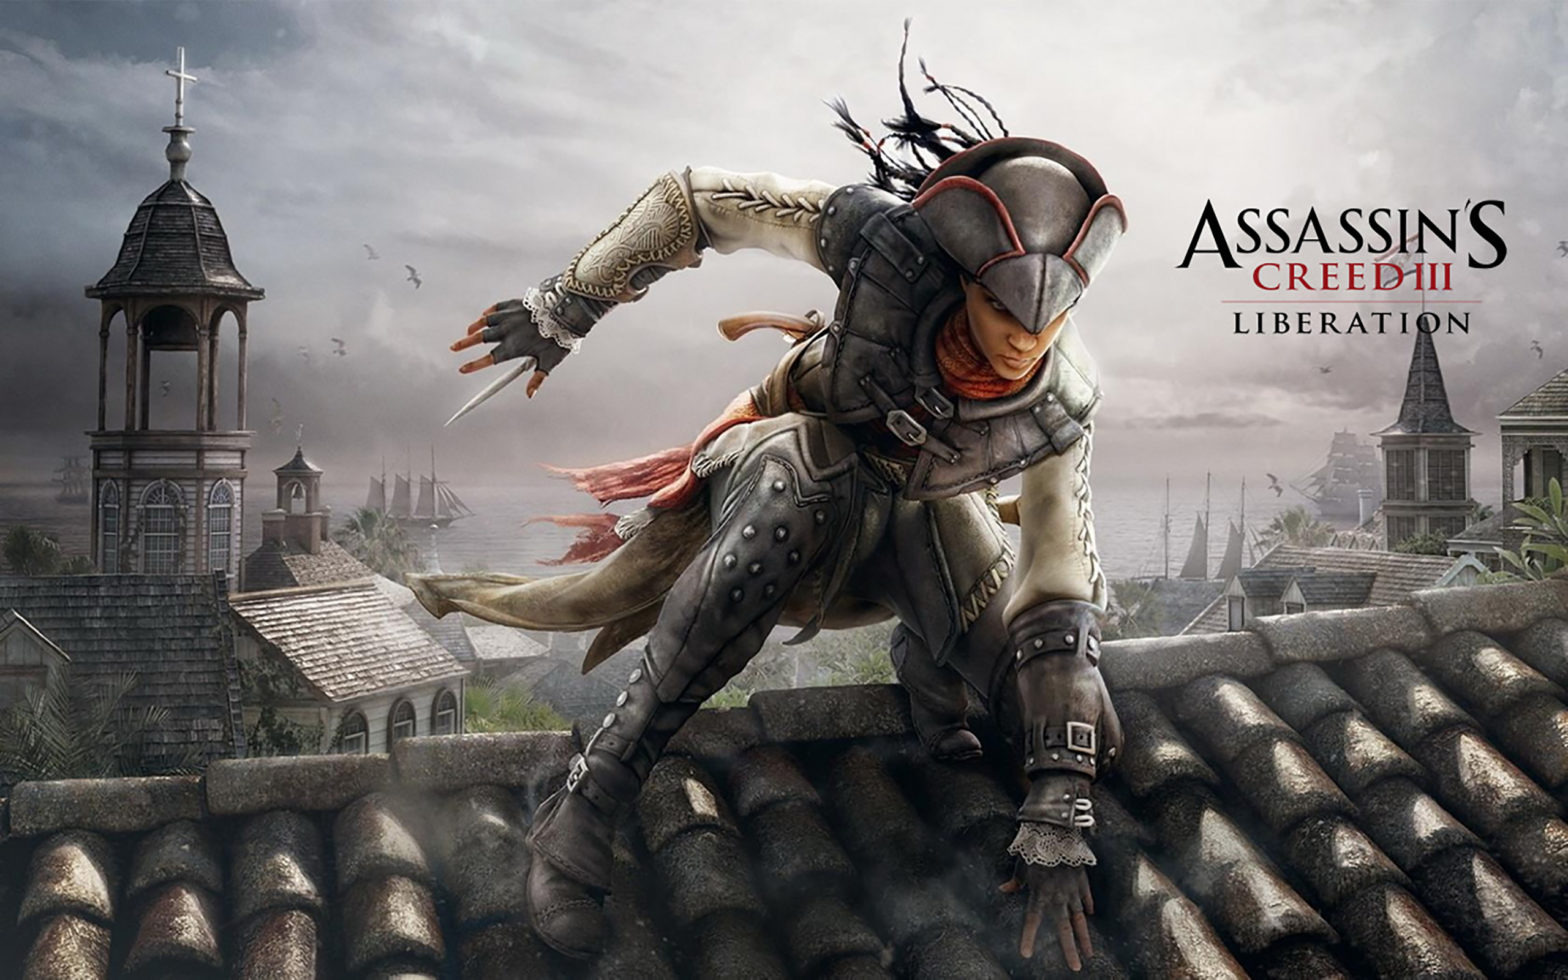 Assassin's Creed 3 Liberation Teaser